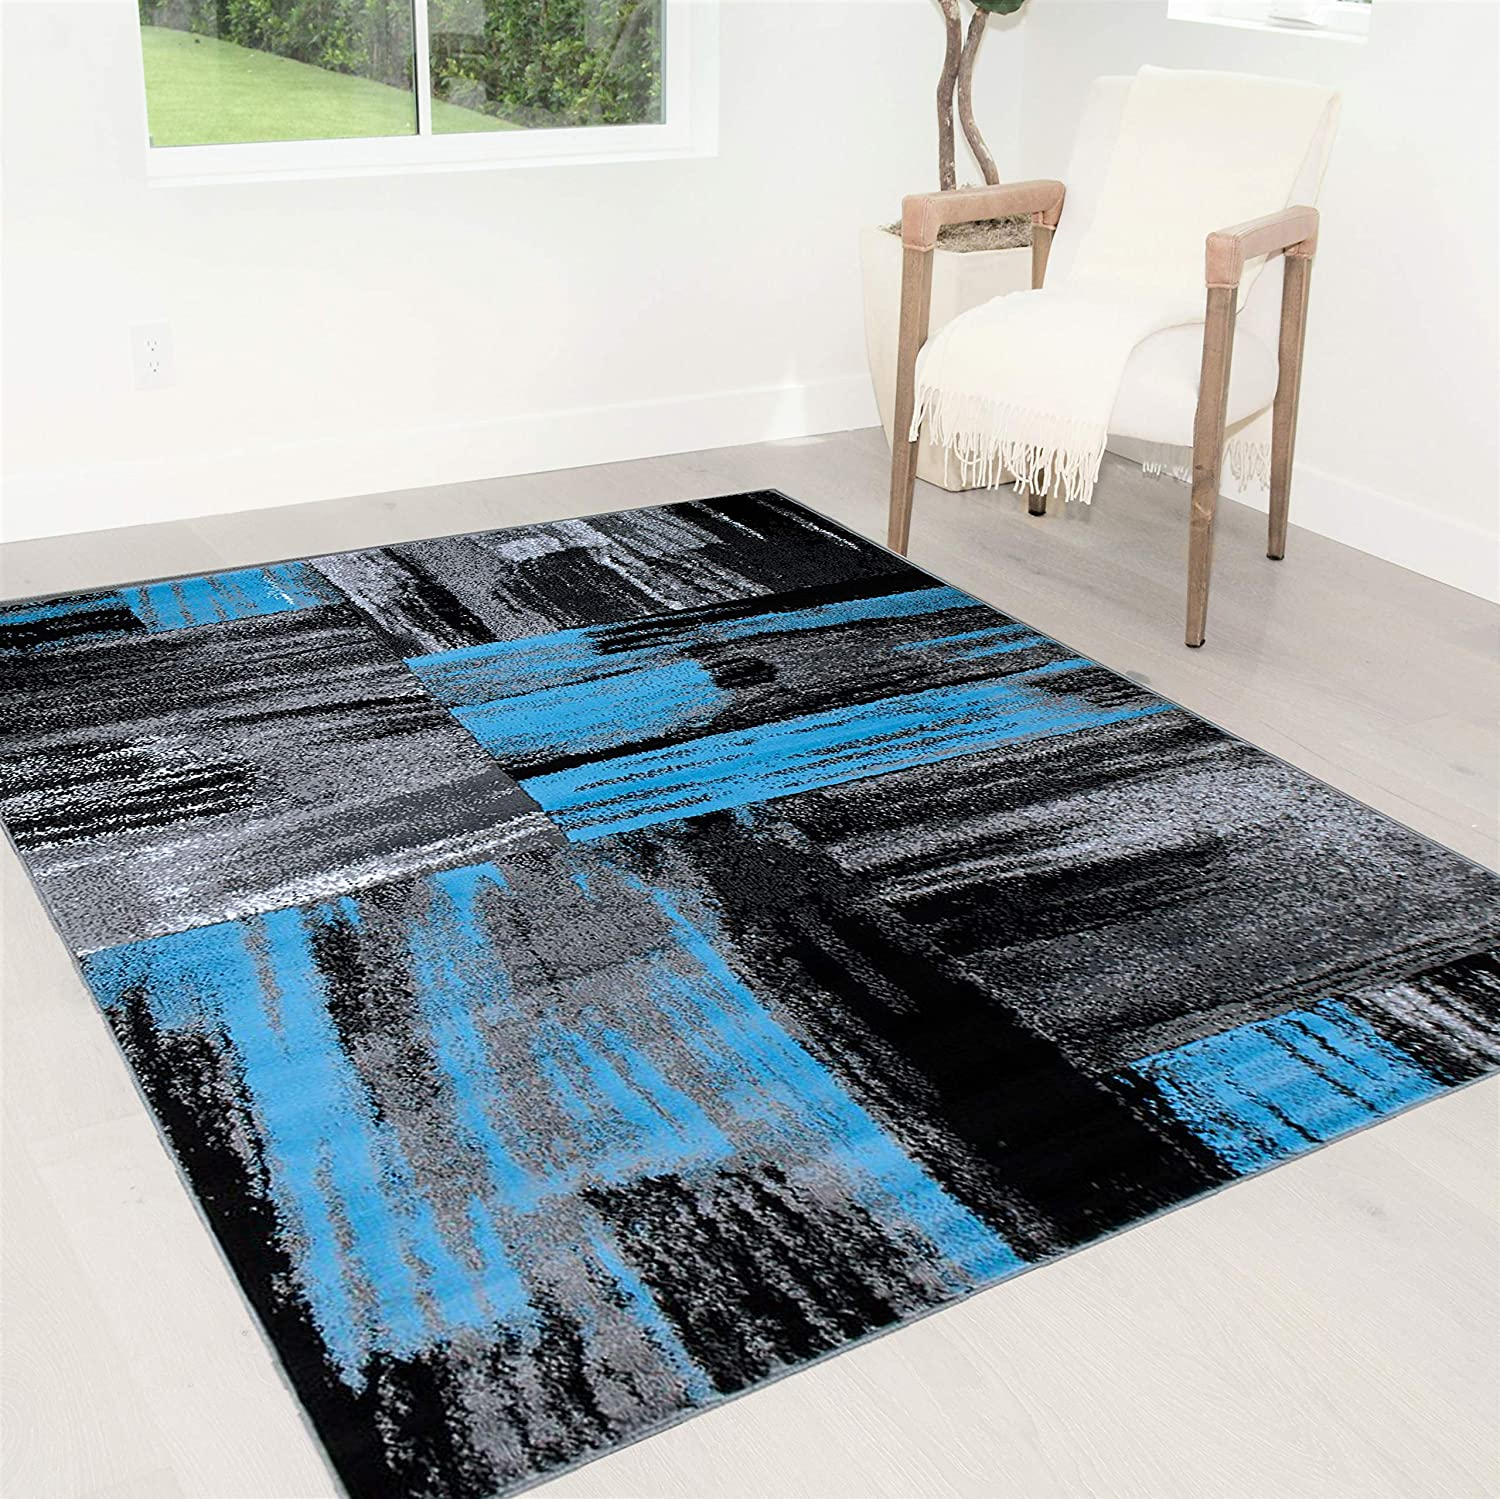 Handcraft Rugs Blue Gray Silver Black Abstract Contemporary Modern Brush Design Mixed Colors Area Rug Kitchen Dining